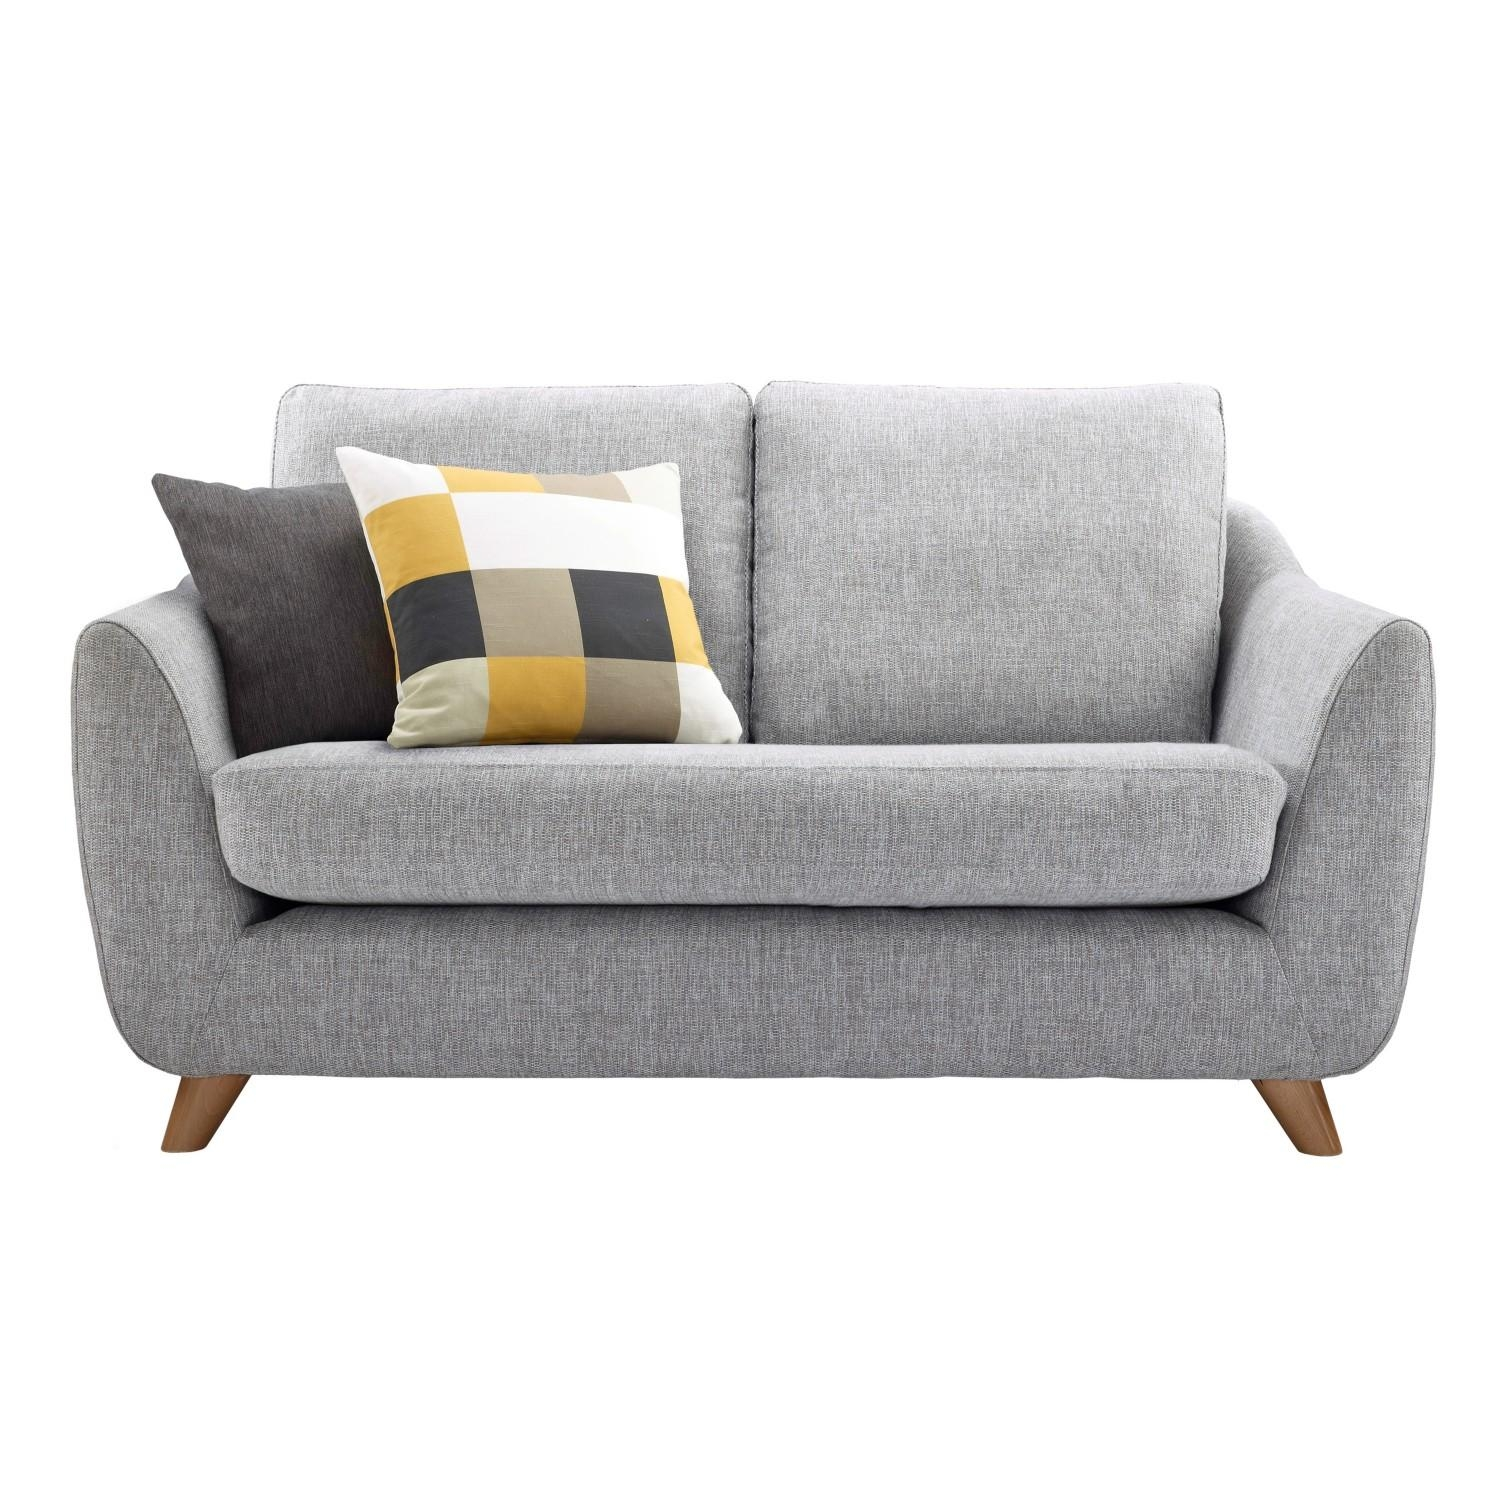 Furniture: Comfy Design Of Sears Sofa Bed For Lovely Home Intended For Sears Sofa (Image 2 of 20)